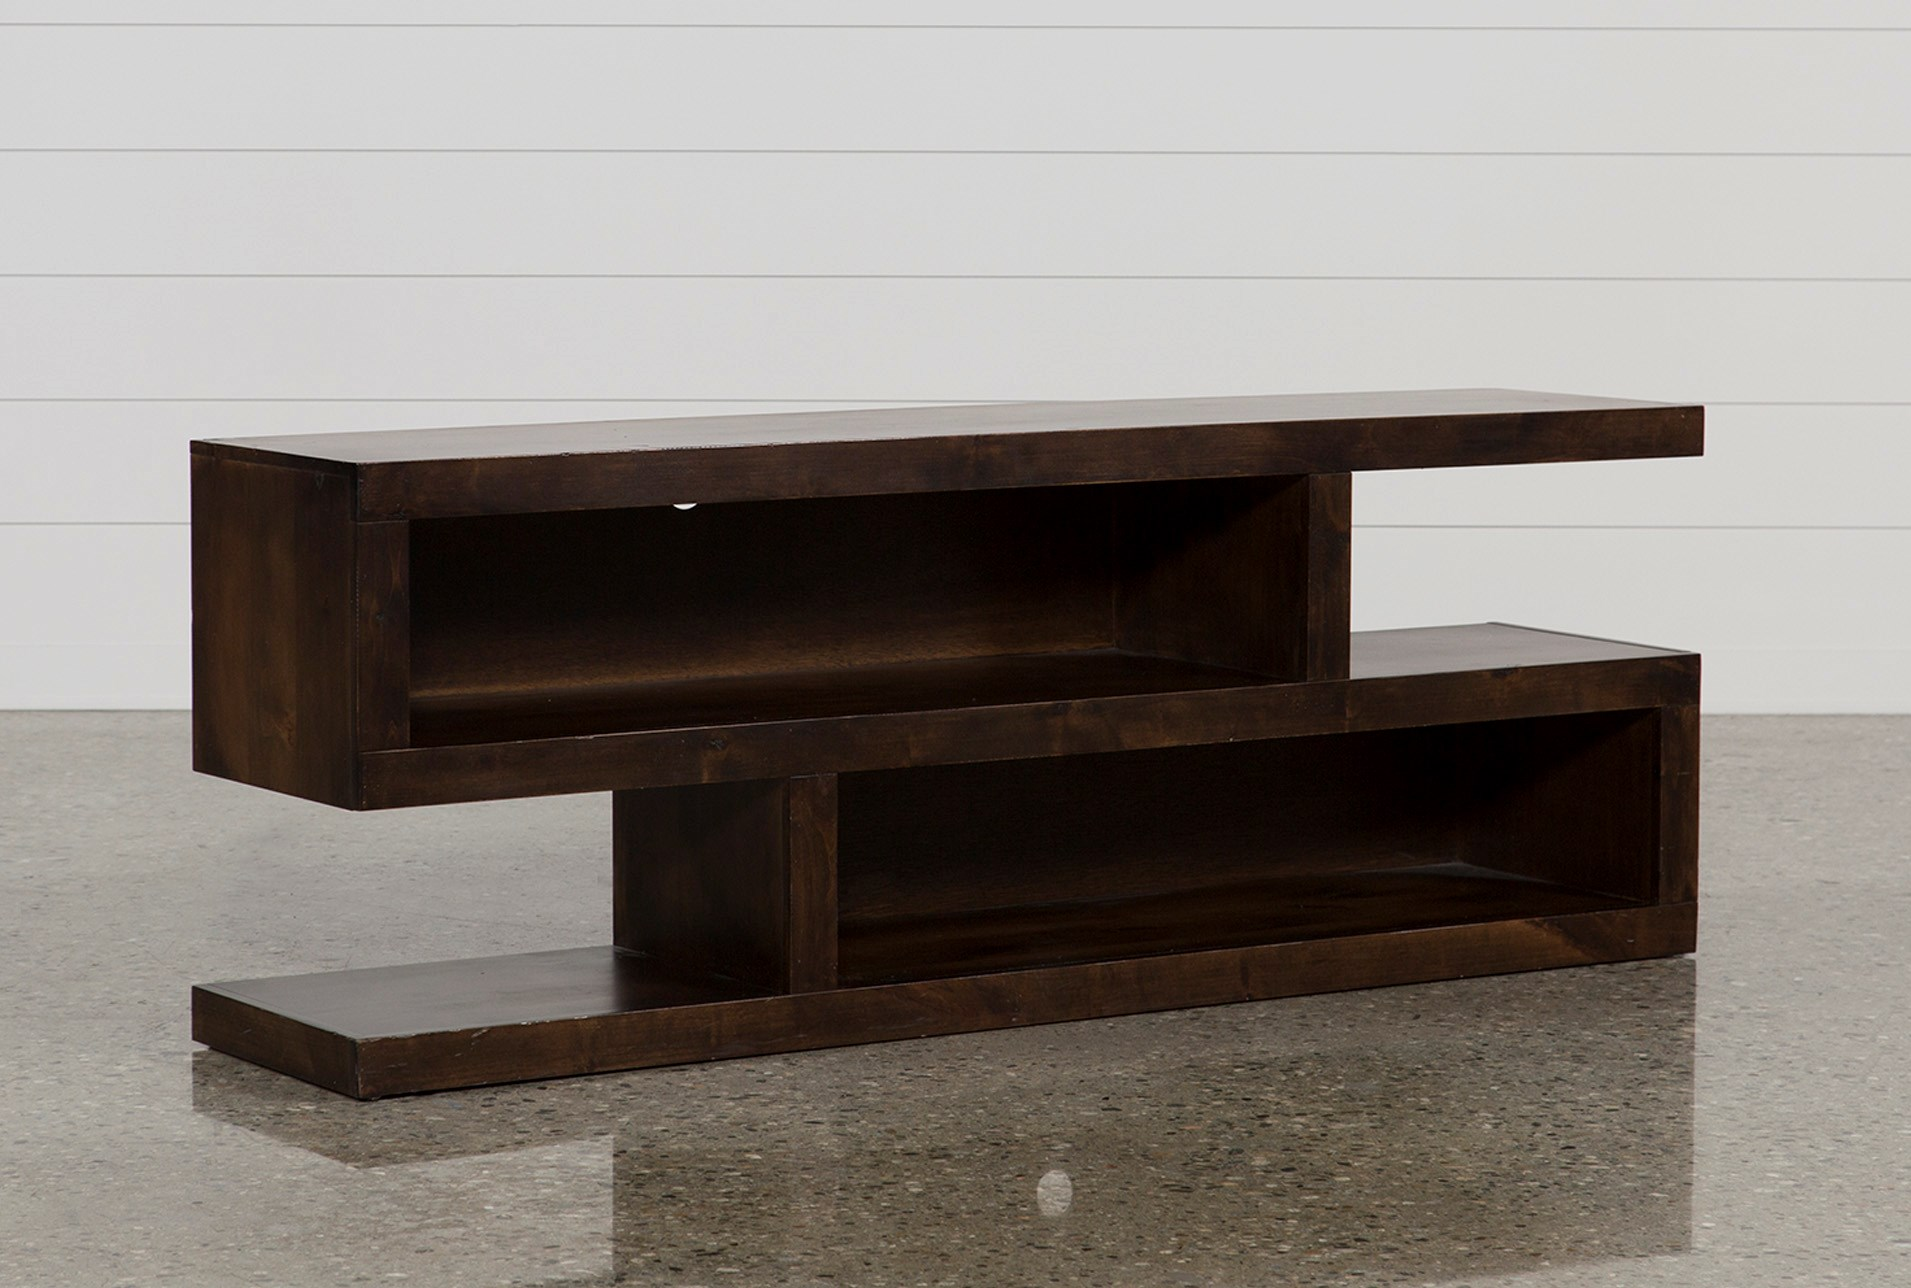 living spaces tv stand. Walton 74 Inch Open TV Stand - 360 Living Spaces Tv